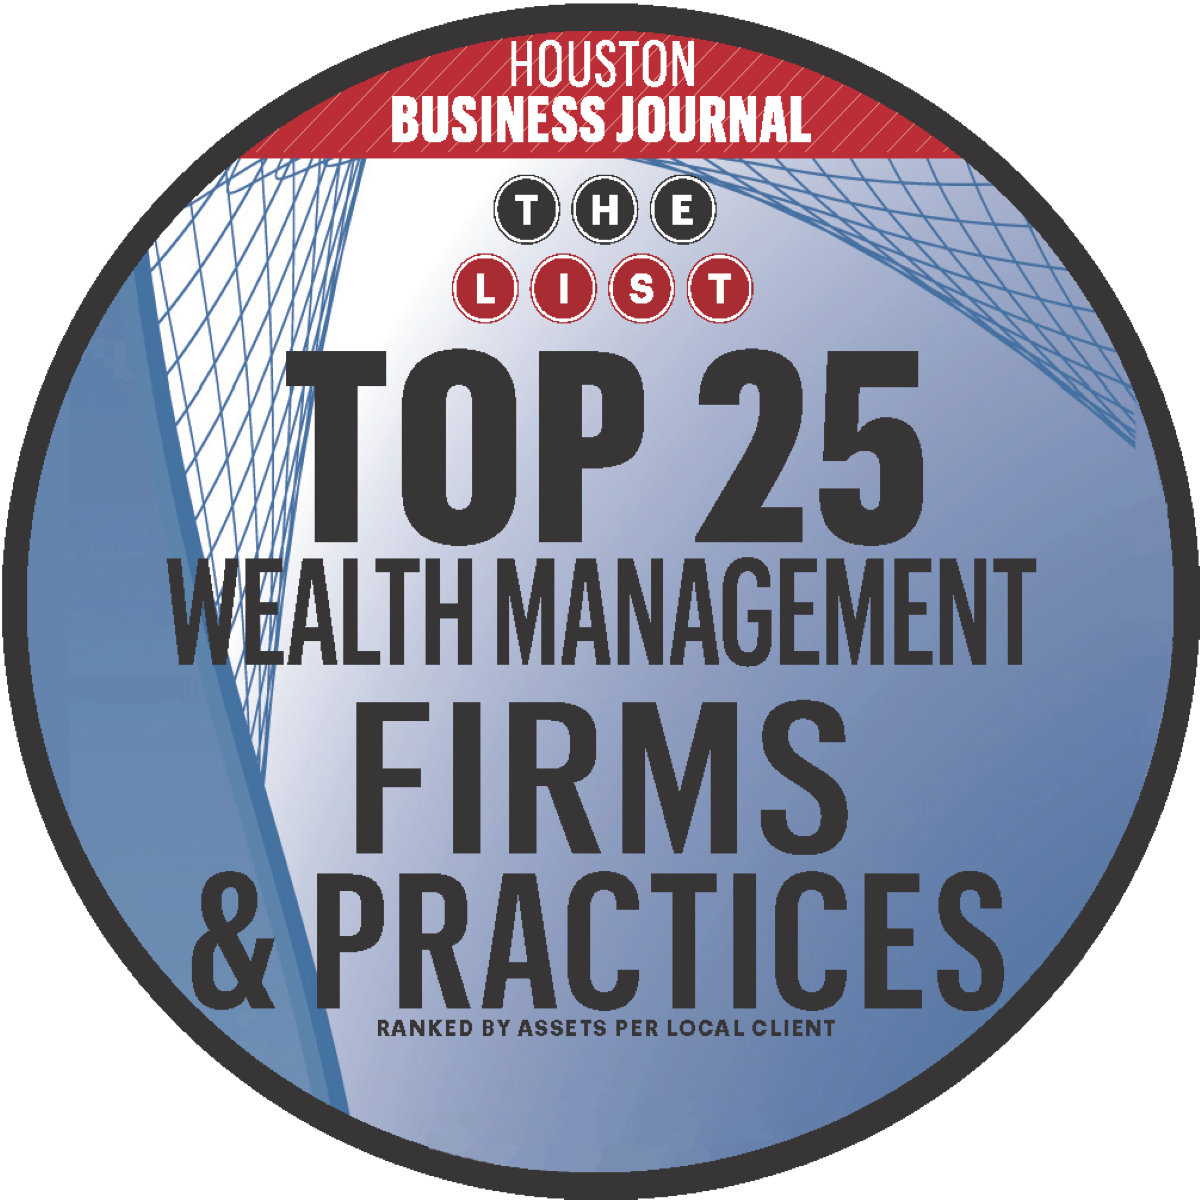 Investec - Houston Business Journal Top 25 Wealth Management Firms and Practices, 2016